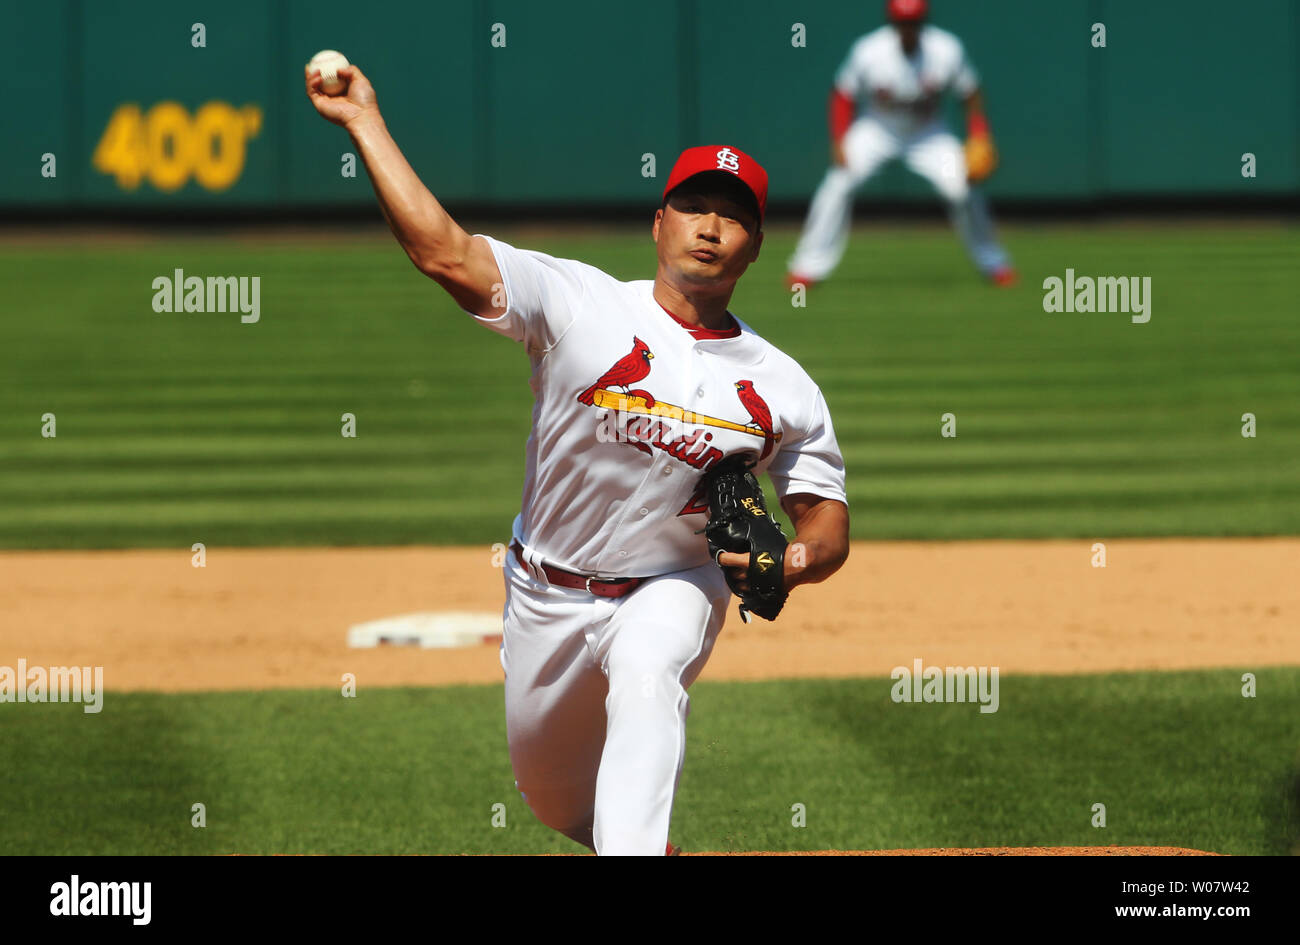 St. Louis Cardinals pitcher Seung Hwan Oh delivers a pitch to the San Diego Padres at Busch Stadium in St. Louis on July 20, 2016.    Photo by Bill Greenblatt/UPI Stock Photo